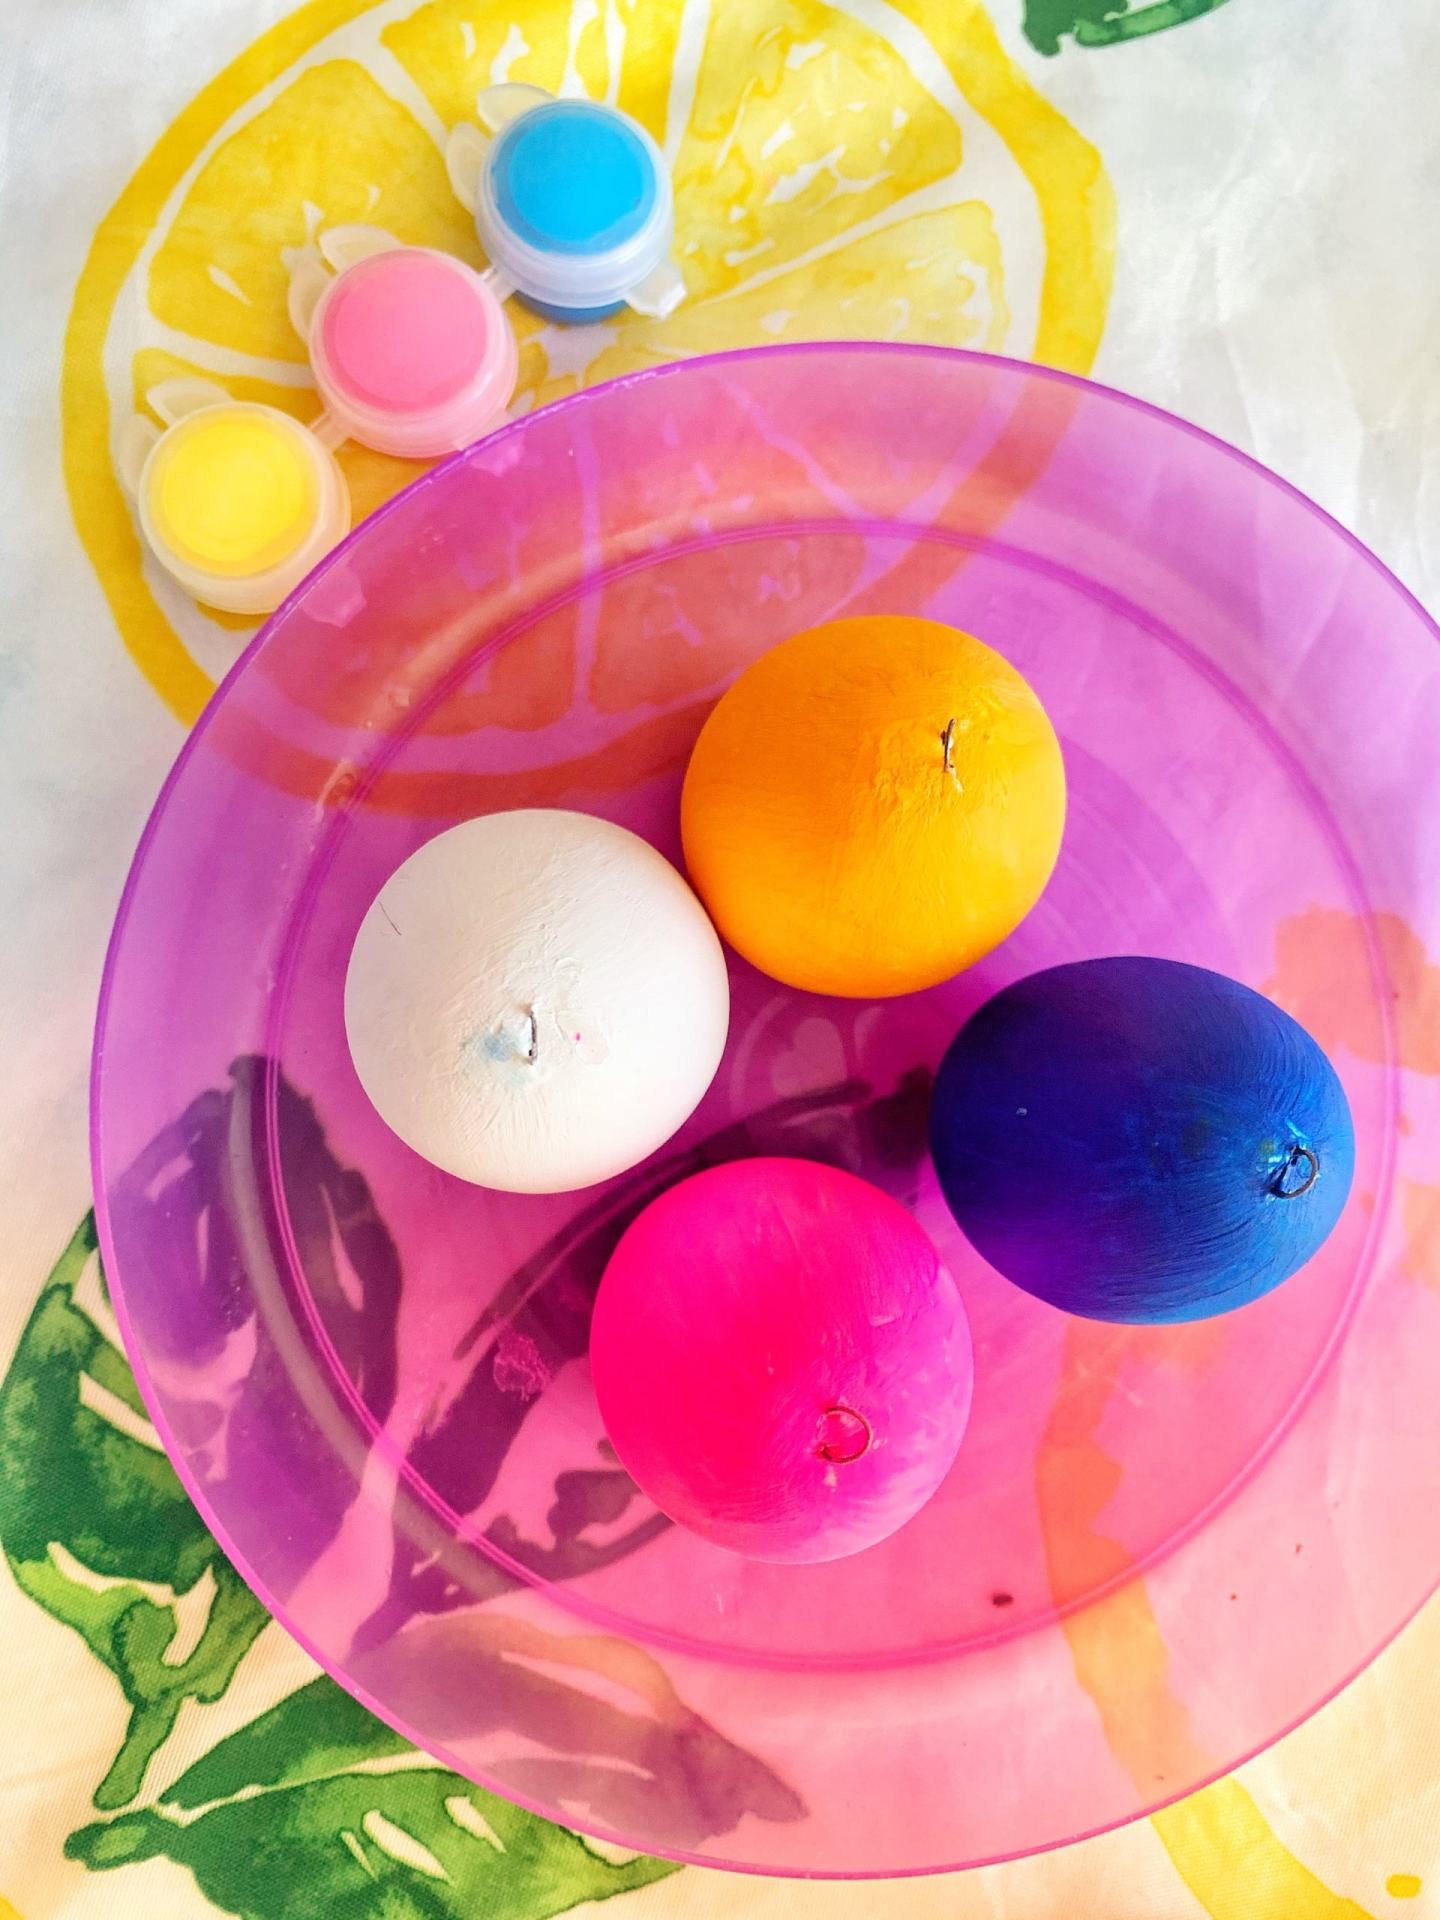 Colouring eggs for Easter